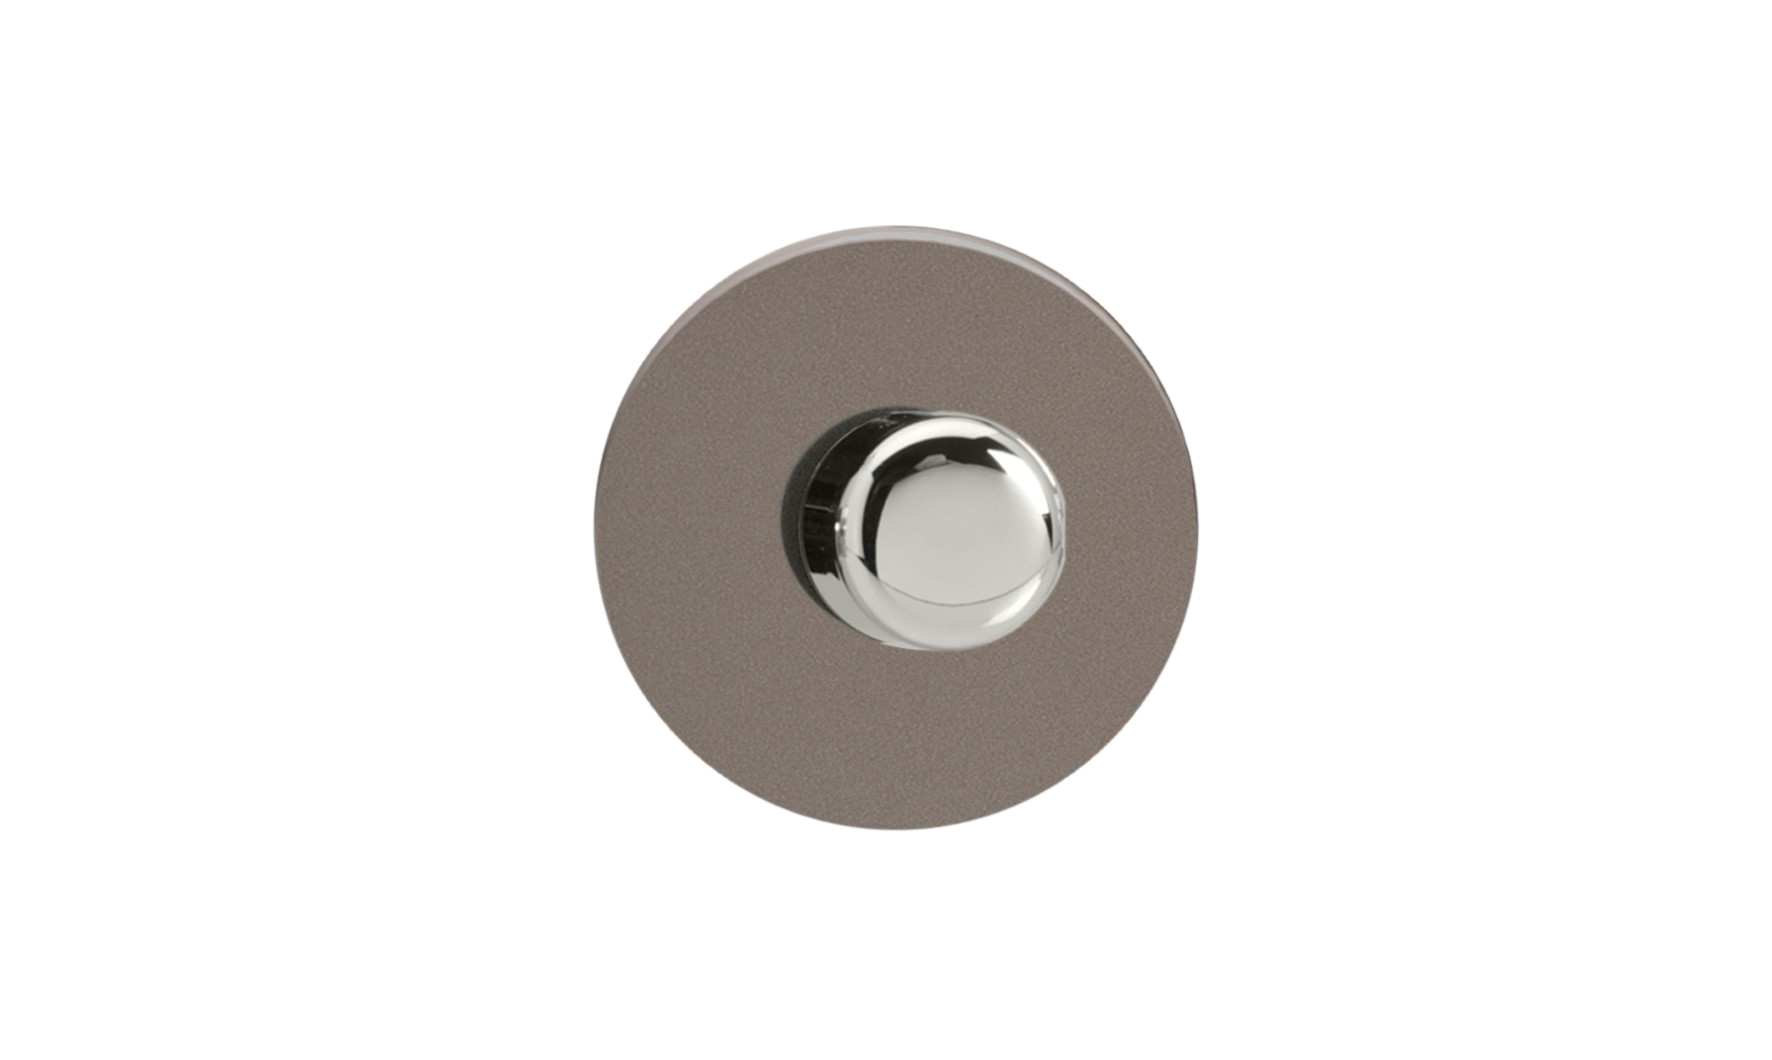 700W Dimmer (Non-LED) - Pewter